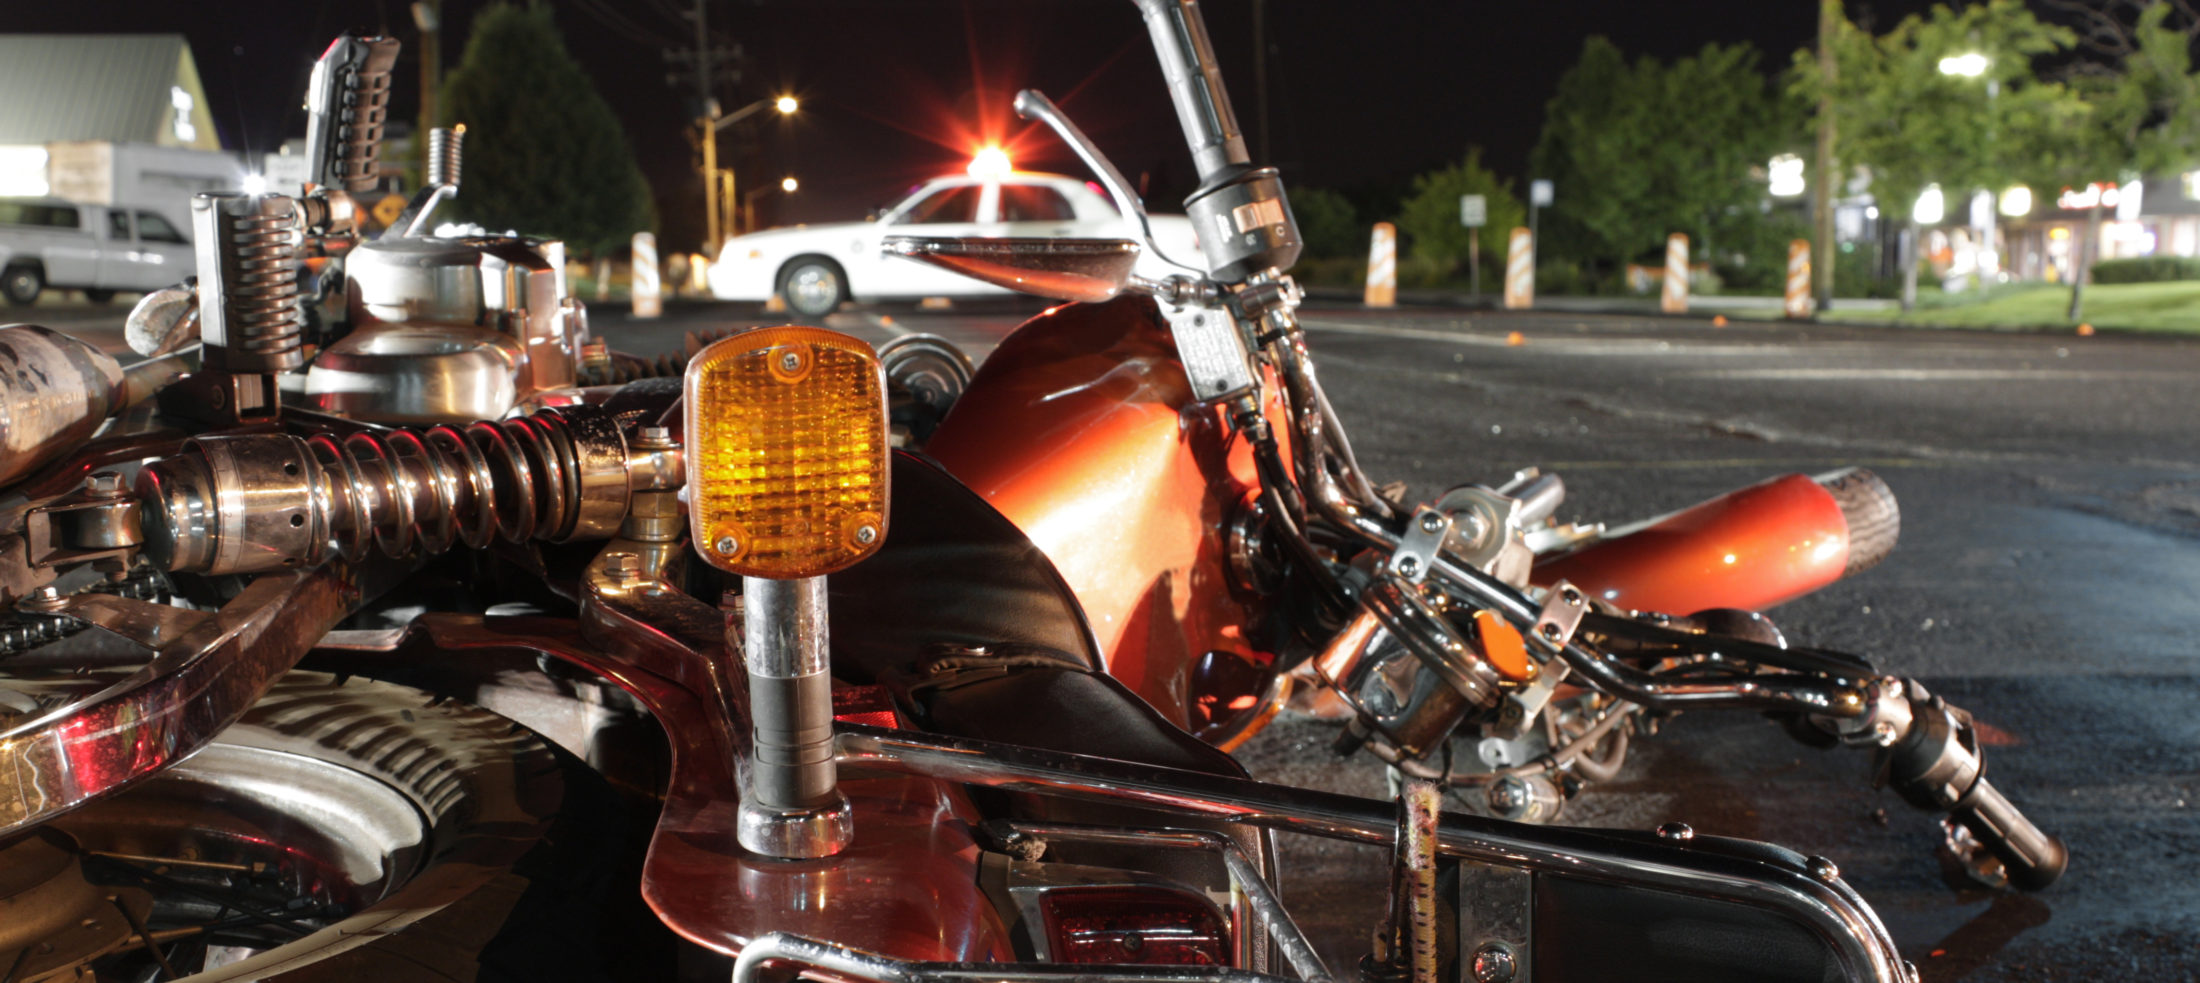 motorcycle accident in South Carolina